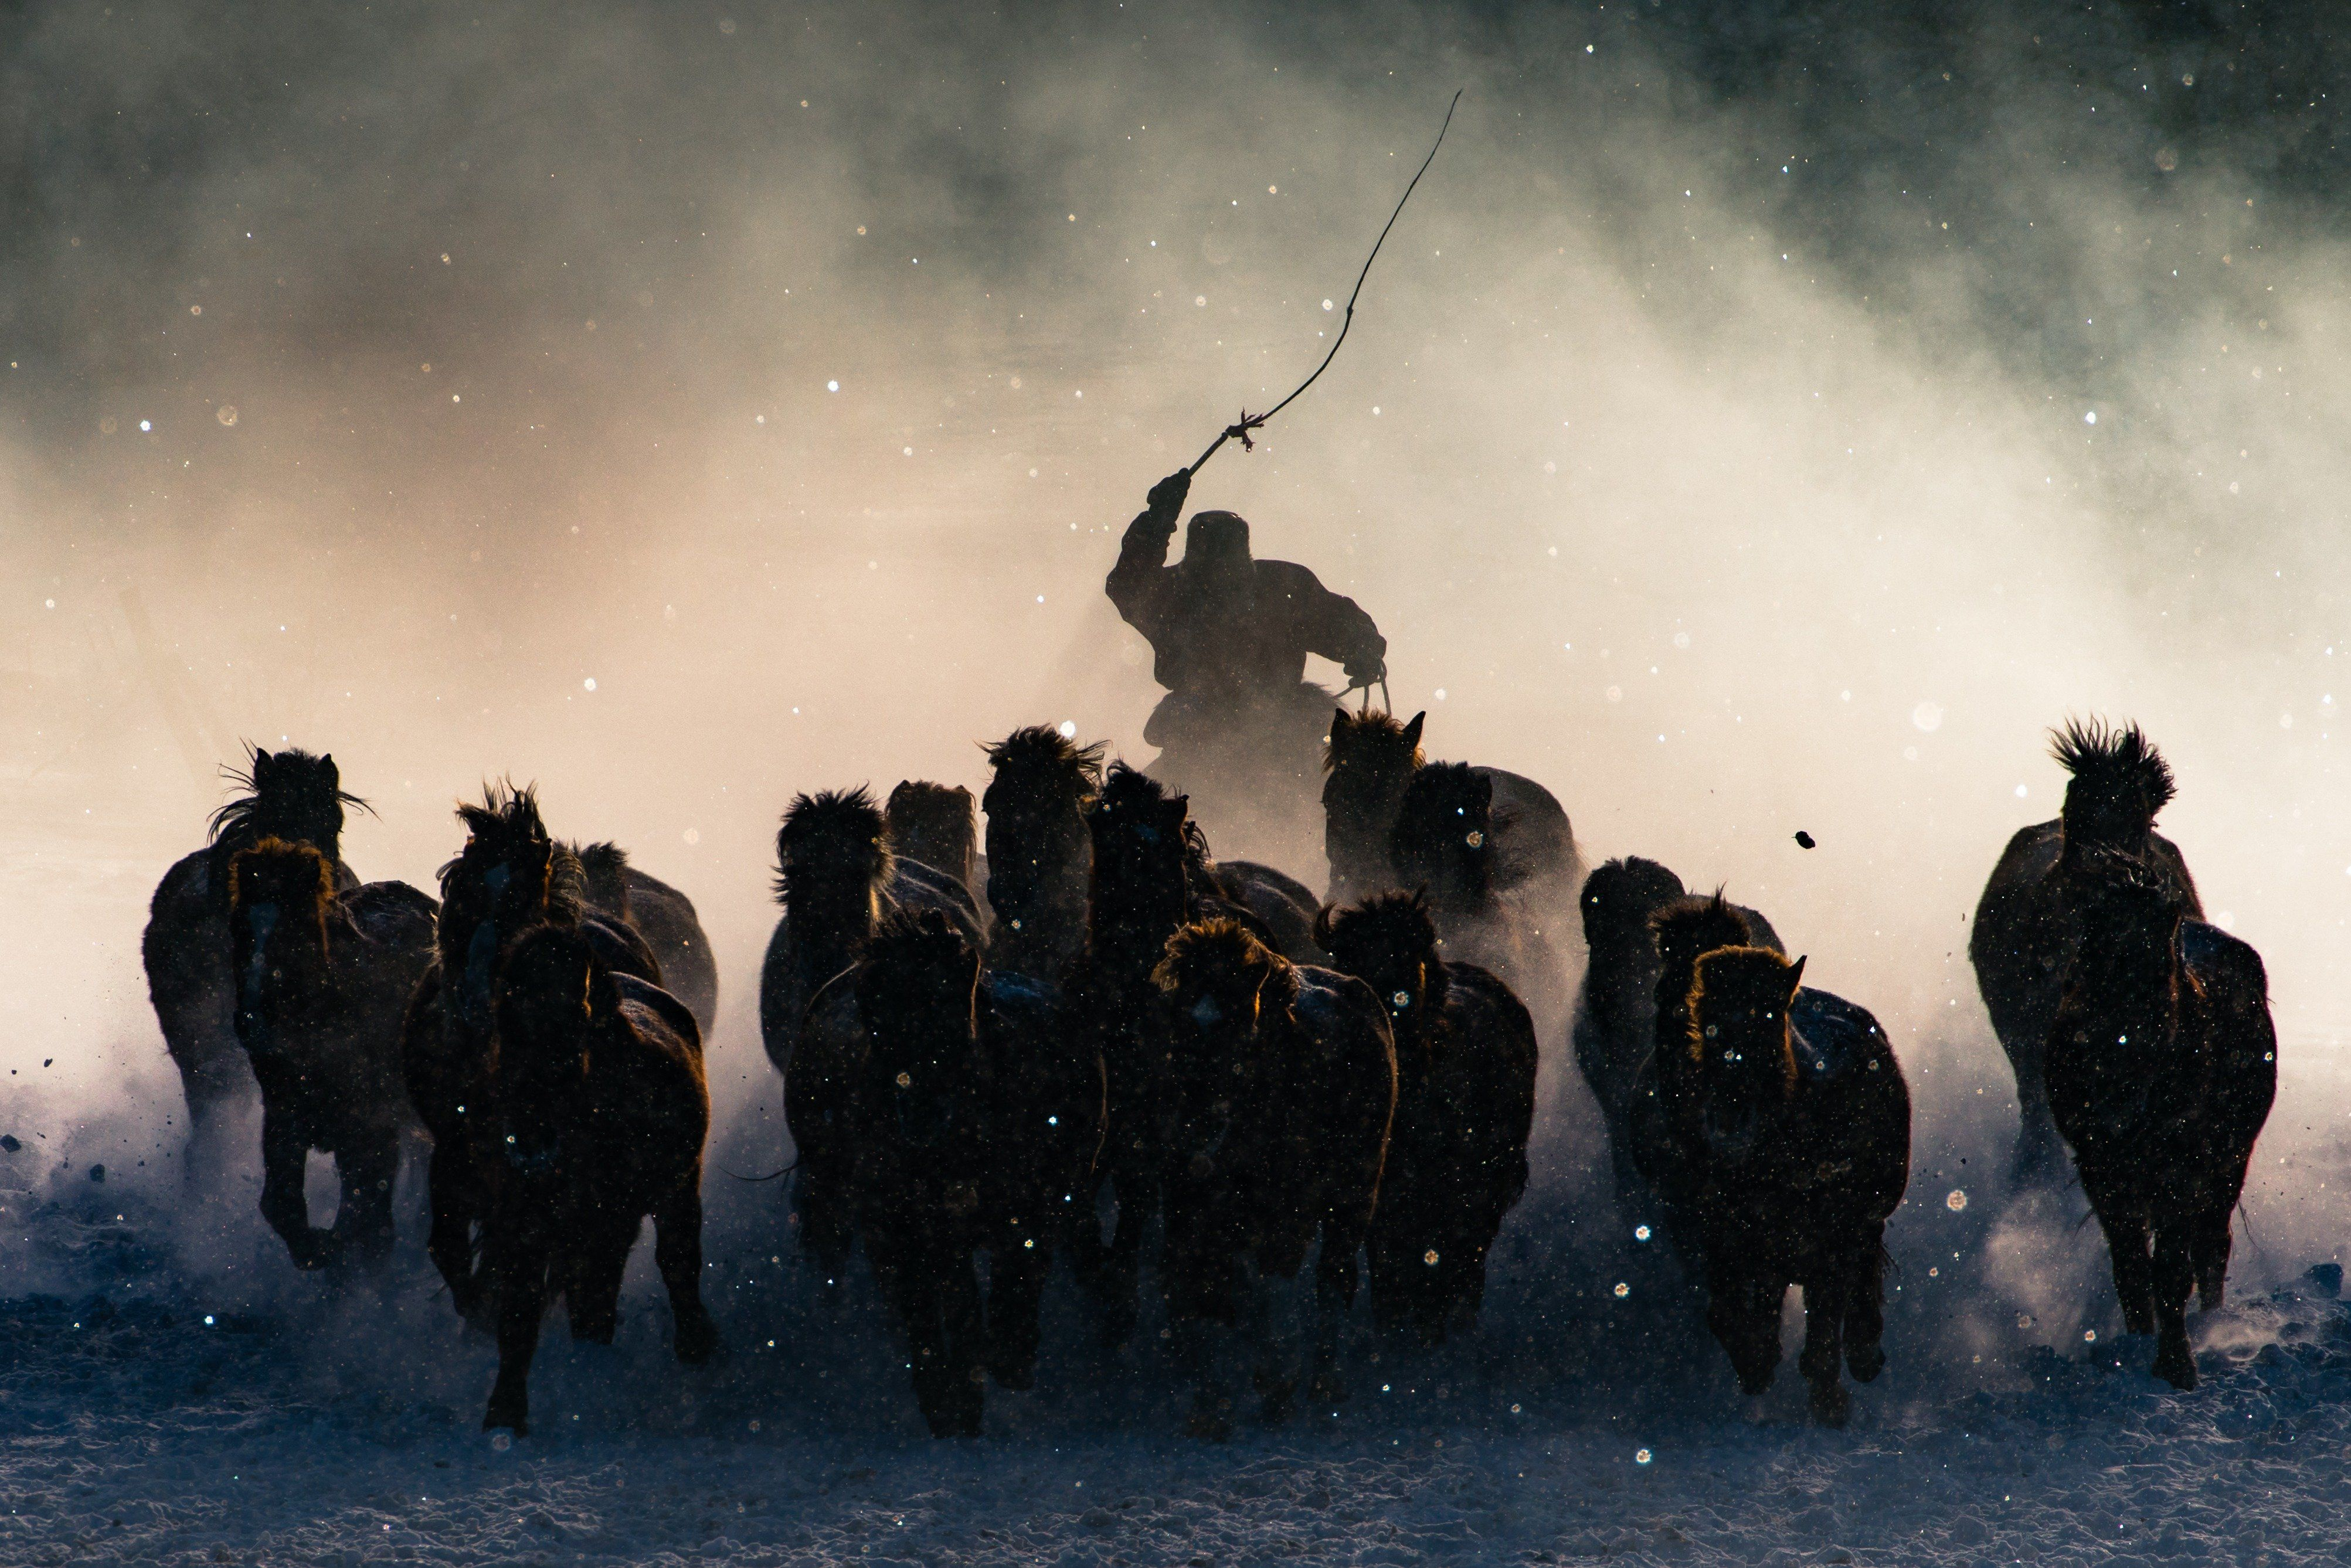 """<strong>Winter Horseman.</strong> Photo and caption by Anthony Lau/<a href=""""http://travel.nationalgeographic.com/photographer-of-the-year-2016/"""" target=""""_blank"""">National Geographic Travel Photographer of the Year Contest.</a><i>""""</i>The Winter in Inner Mongolia is very unforgiving. At a freezing temperature of minus twenty and lower with constant breeze of snow from all direction, it was pretty hard to convince myself to get out of the car and take photos. Not until I saw Inner Mongolia horsemen showing off their skills in commanding the steed from a distance, I quickly grab my telephoto lens and capture the moment when one of the horseman charged out from morning mist."""""""